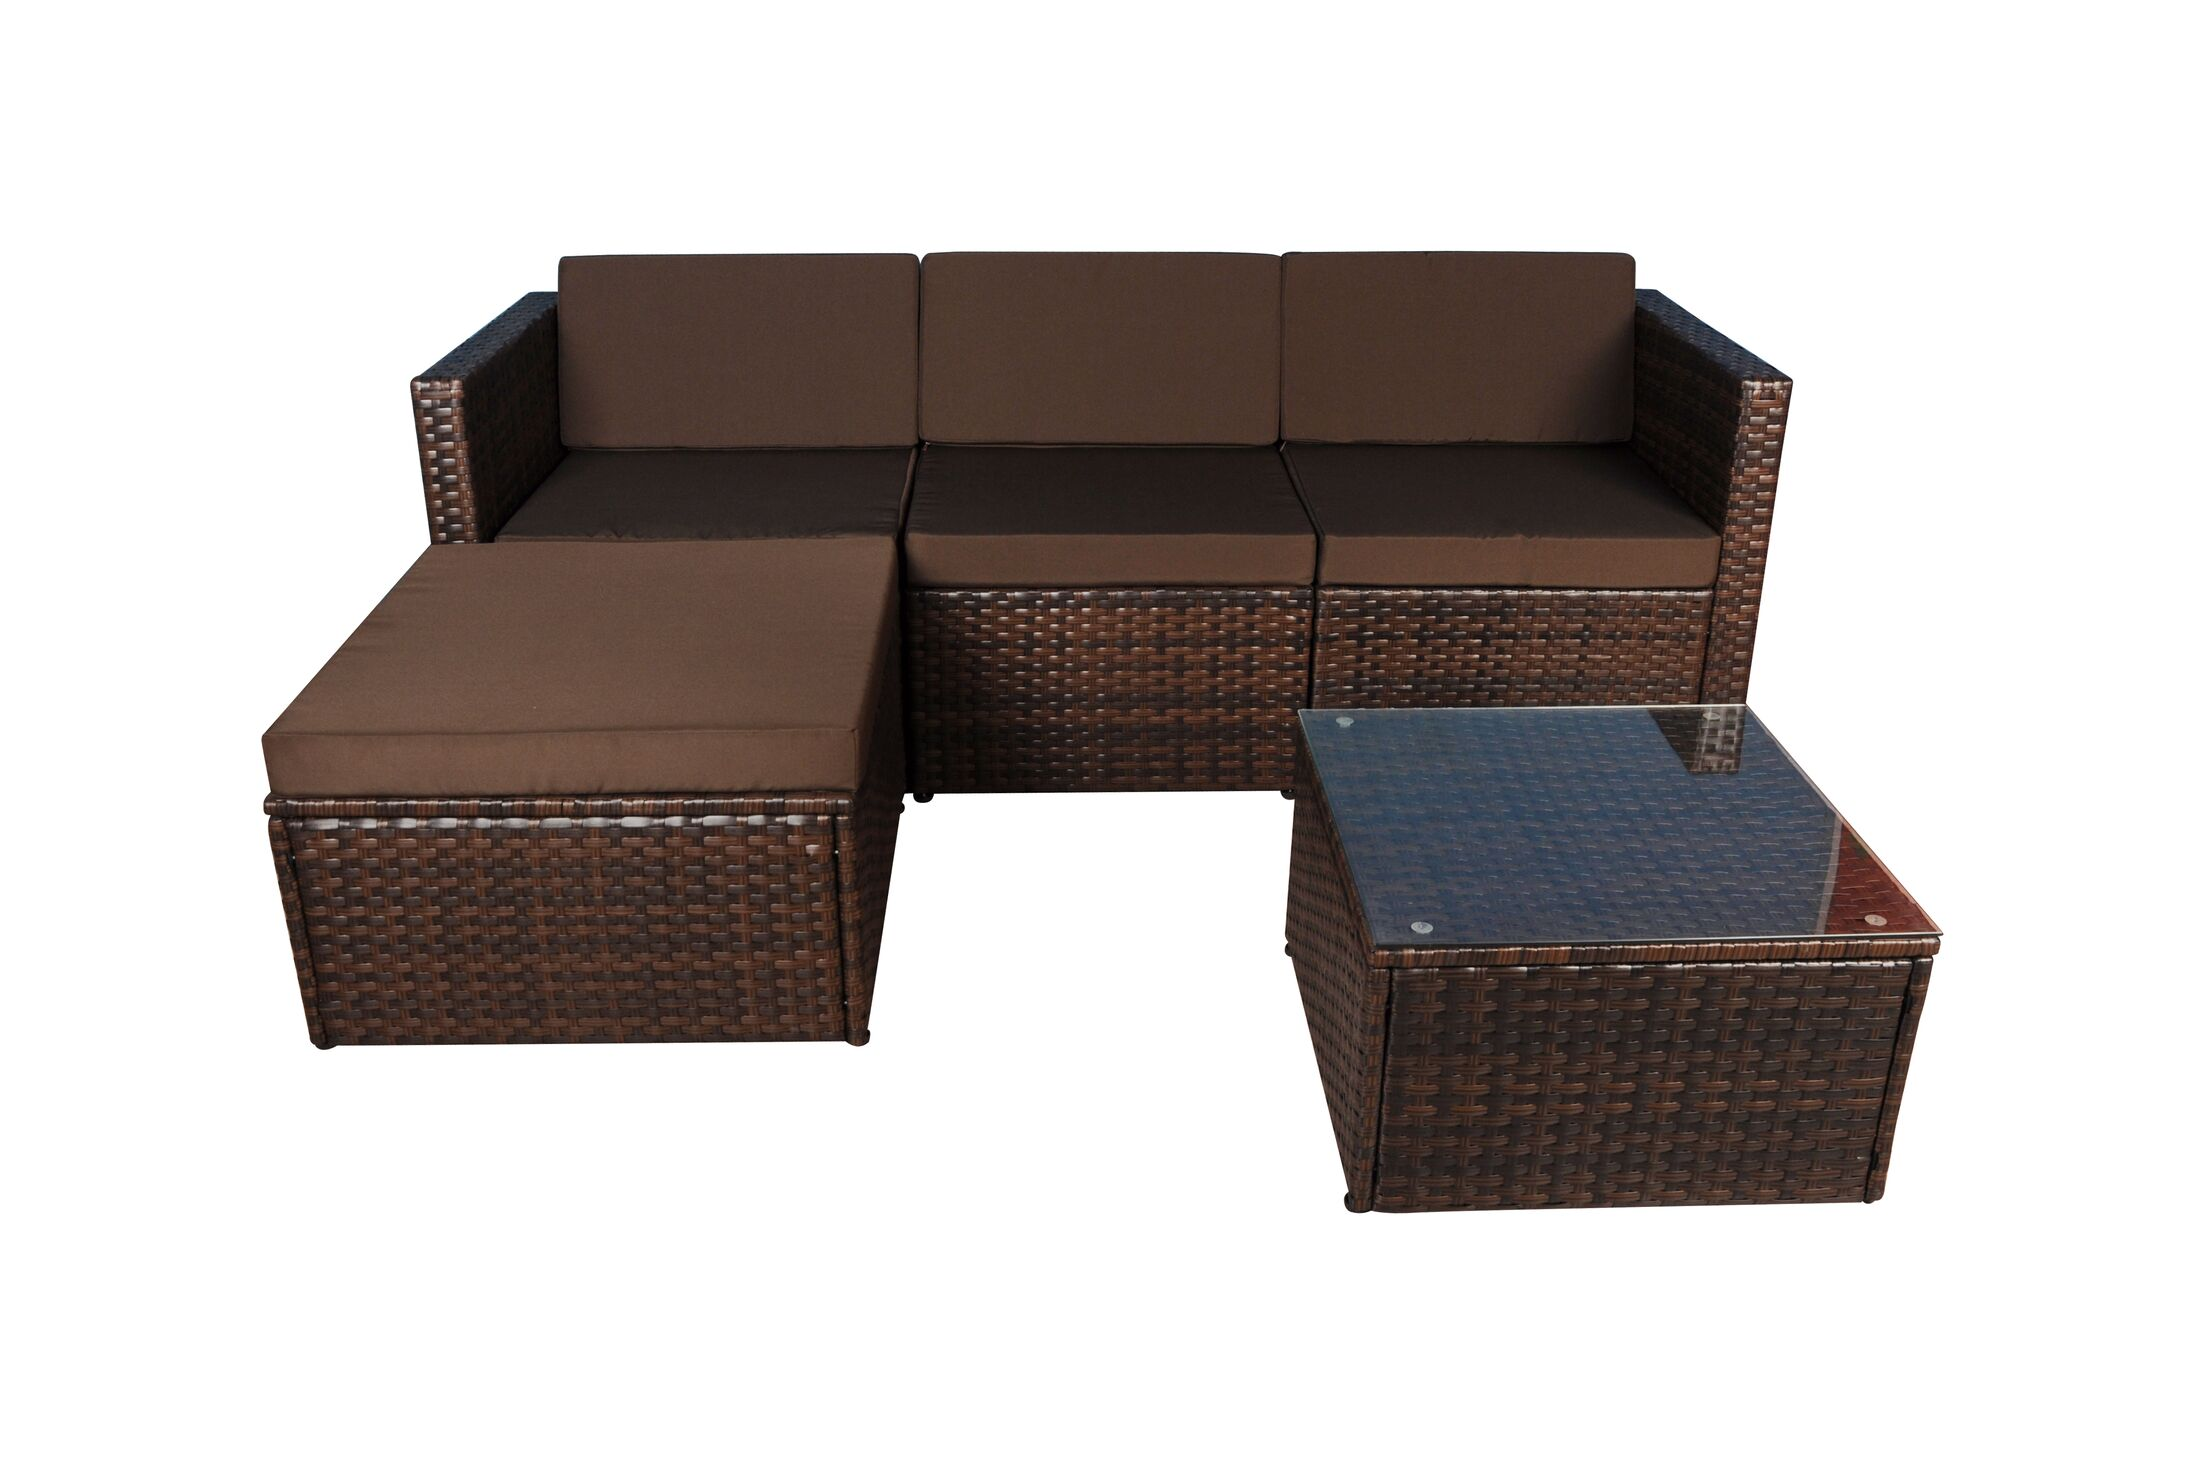 3 Piece Sectional Set with Cushions Fabric: Brown, Frame Color: Brown